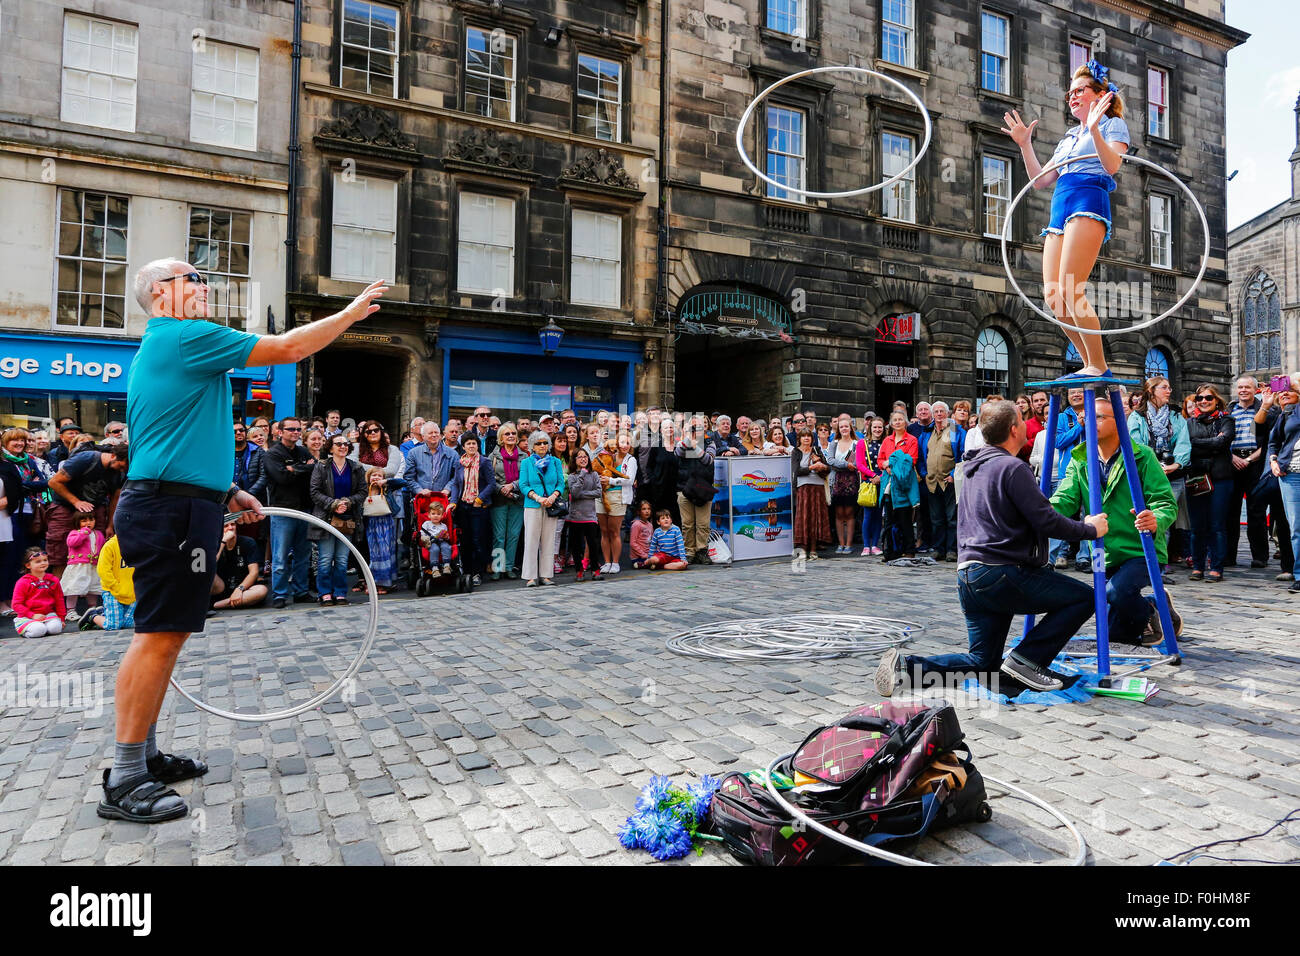 Acrobat called 'Maples' performing with hula hoops in The Royal Mile, Edinburgh at the Fringe Festival, - Stock Image